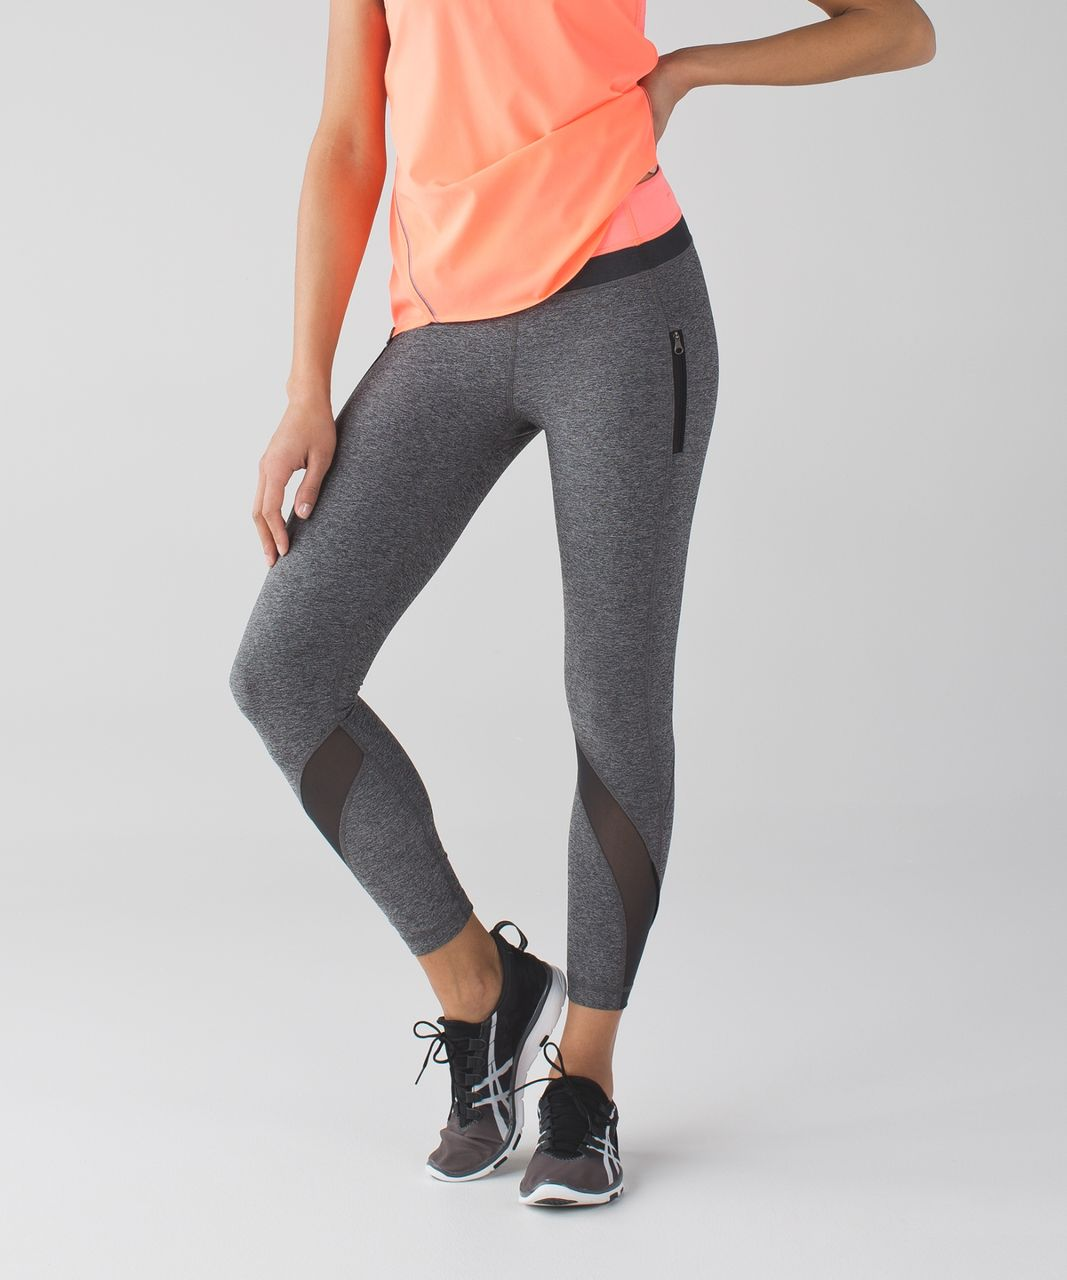 936db80a0b Lululemon Inspire Tight II (Mesh) - Heathered Black / Very Light Flare /  Deep Coal - lulu fanatics